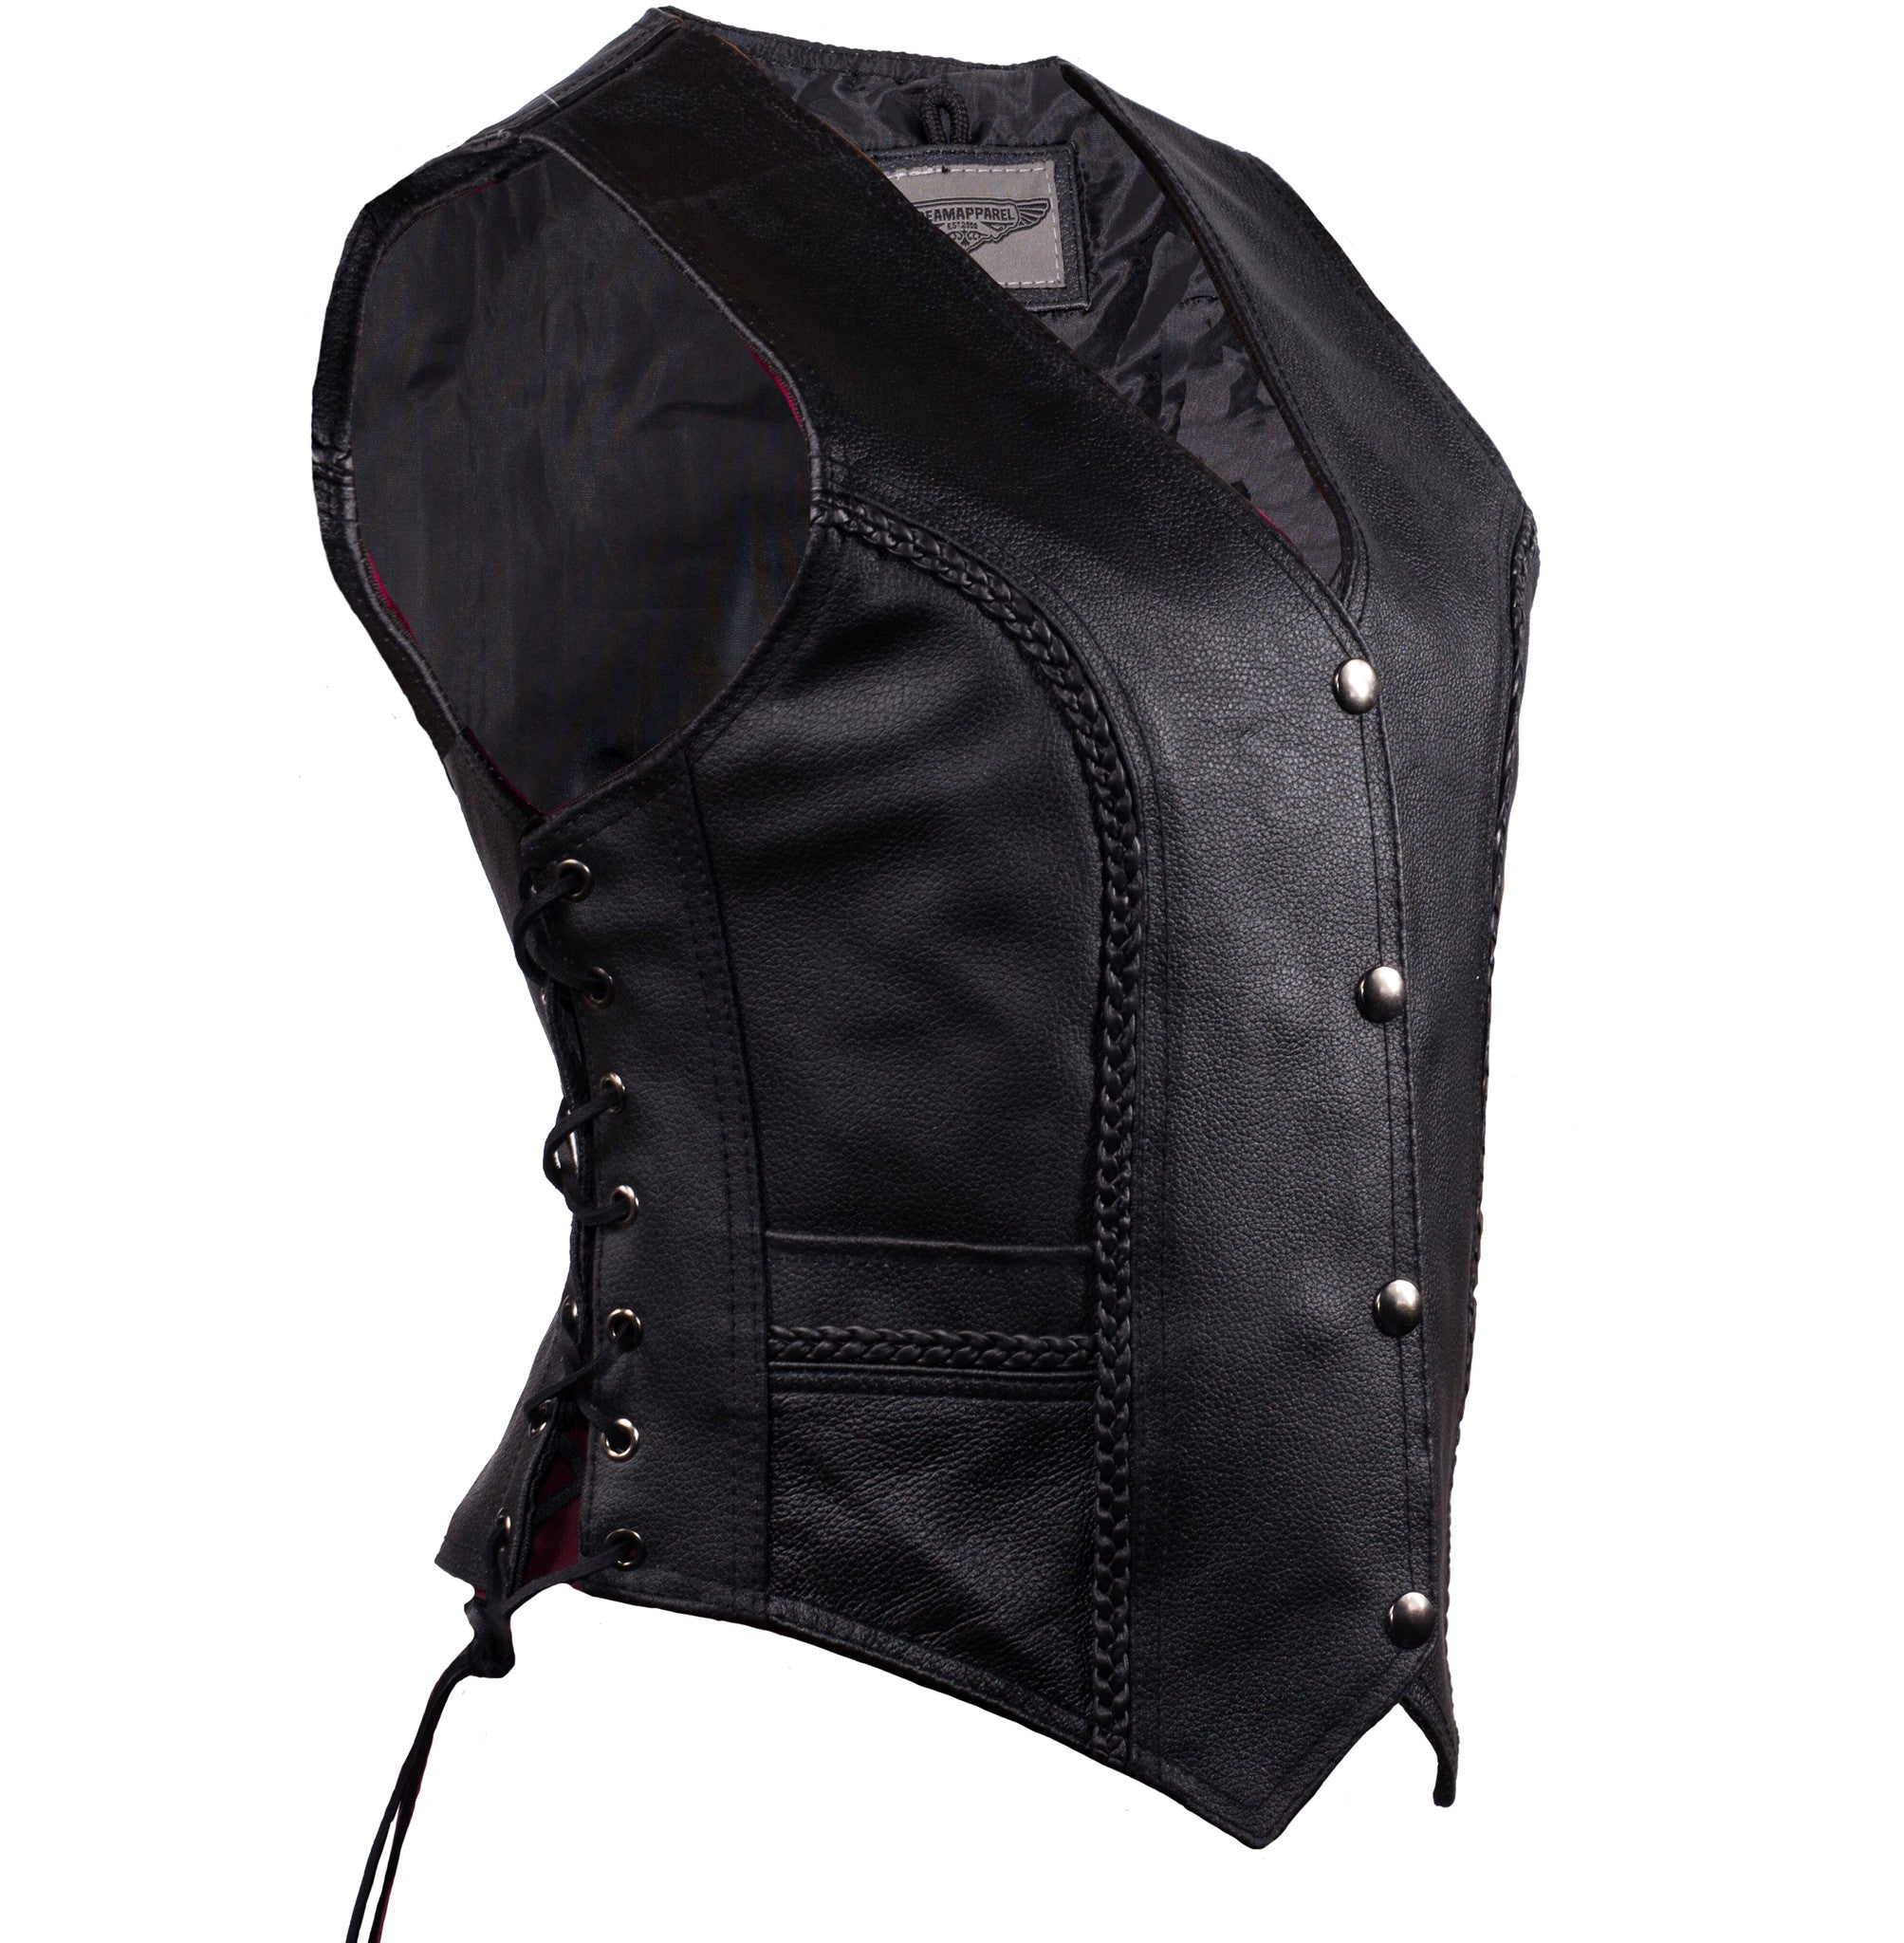 WOMEN'S RIDING LEATHER BRAIDED VEST SIDE LACES